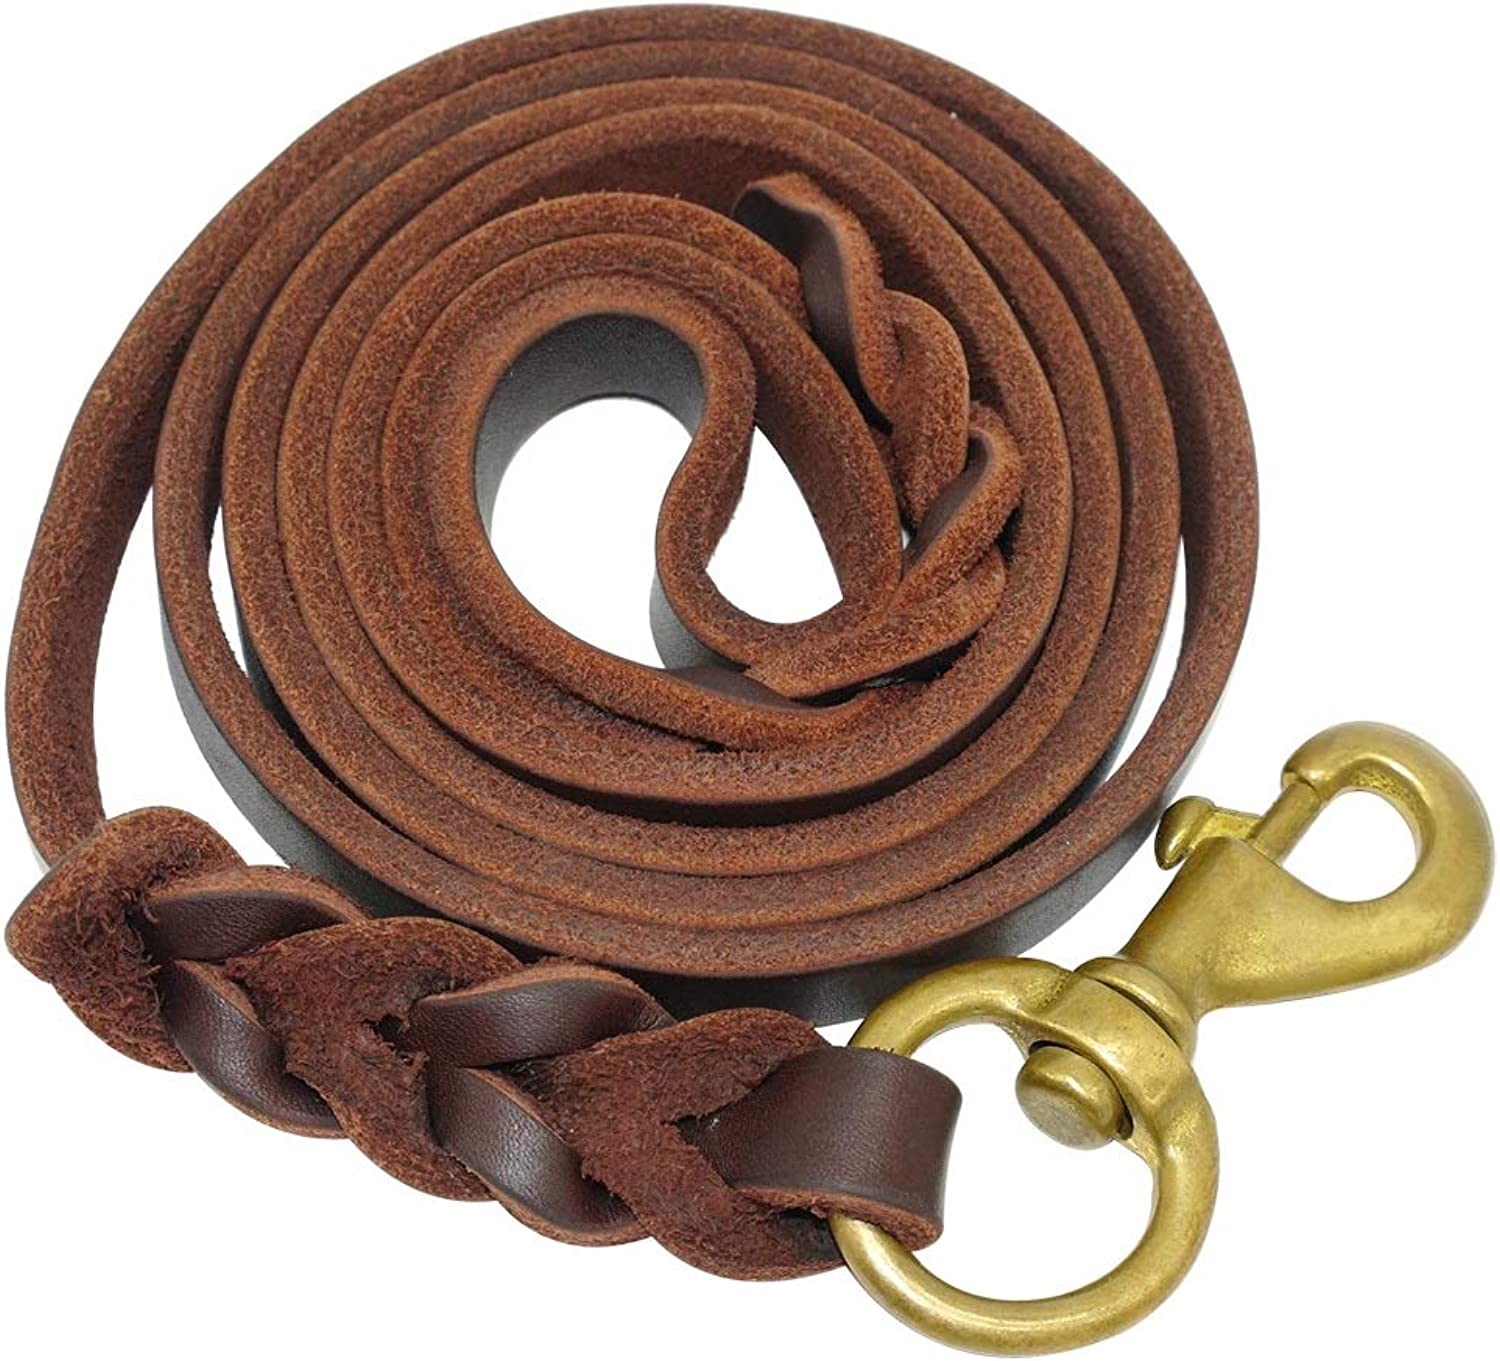 BeTTi Braided Leather Dog Leash Pet Walking Training Leash Lead for Medium Large Dogs German Shepherd Gift Dog Training Clicker (color   Brown, Size   16mm x 210cm)